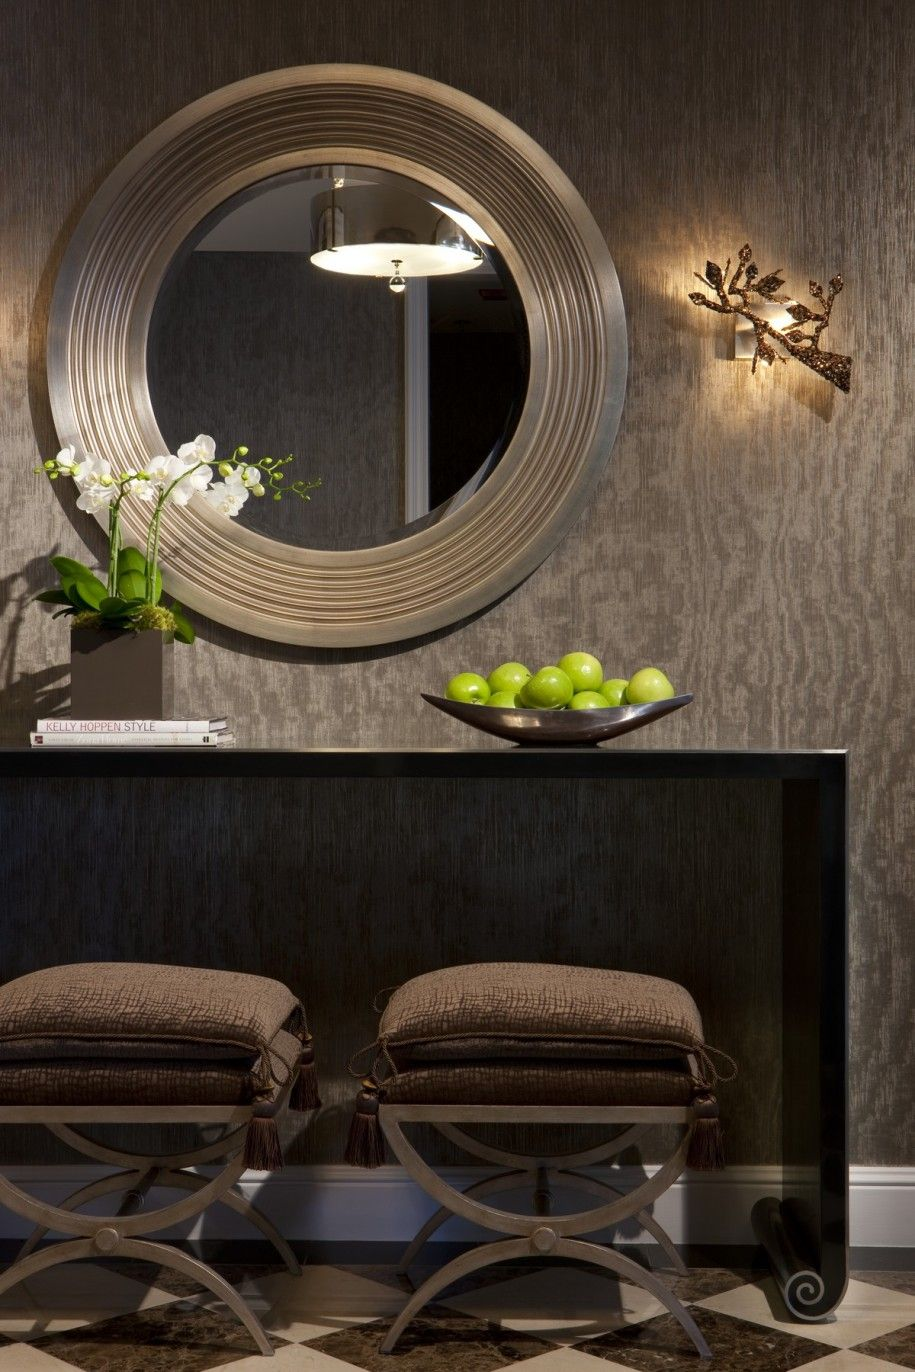 10 Jaw Droppingly Sumptuous Wall Mirrors For Your Decorating Projects